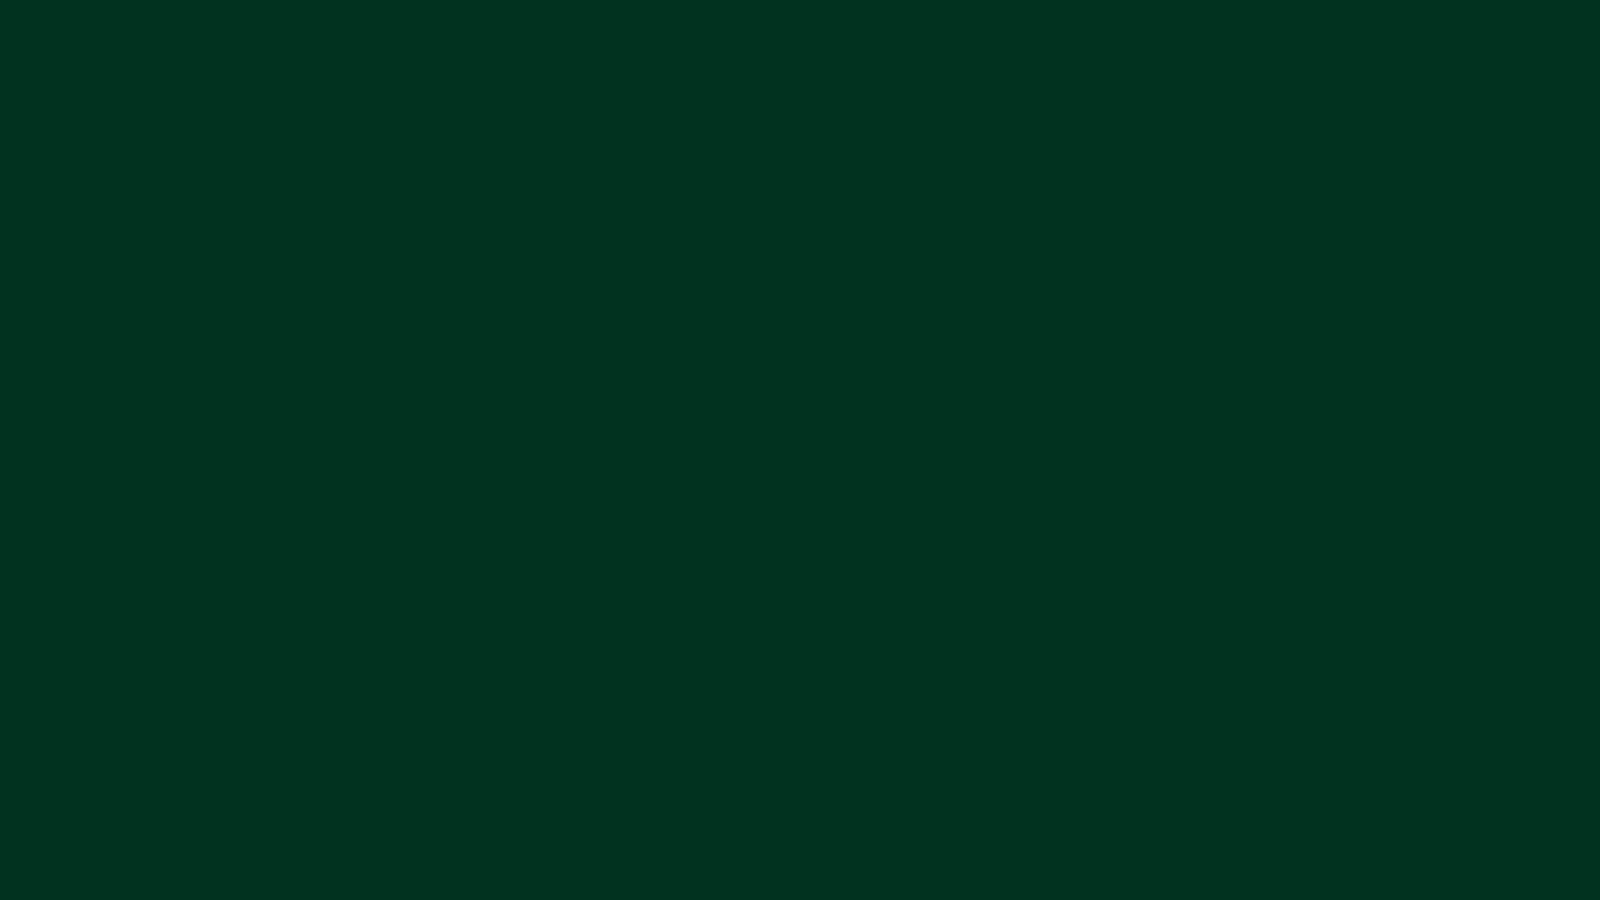 1600x900 Dark Green Solid Color Background